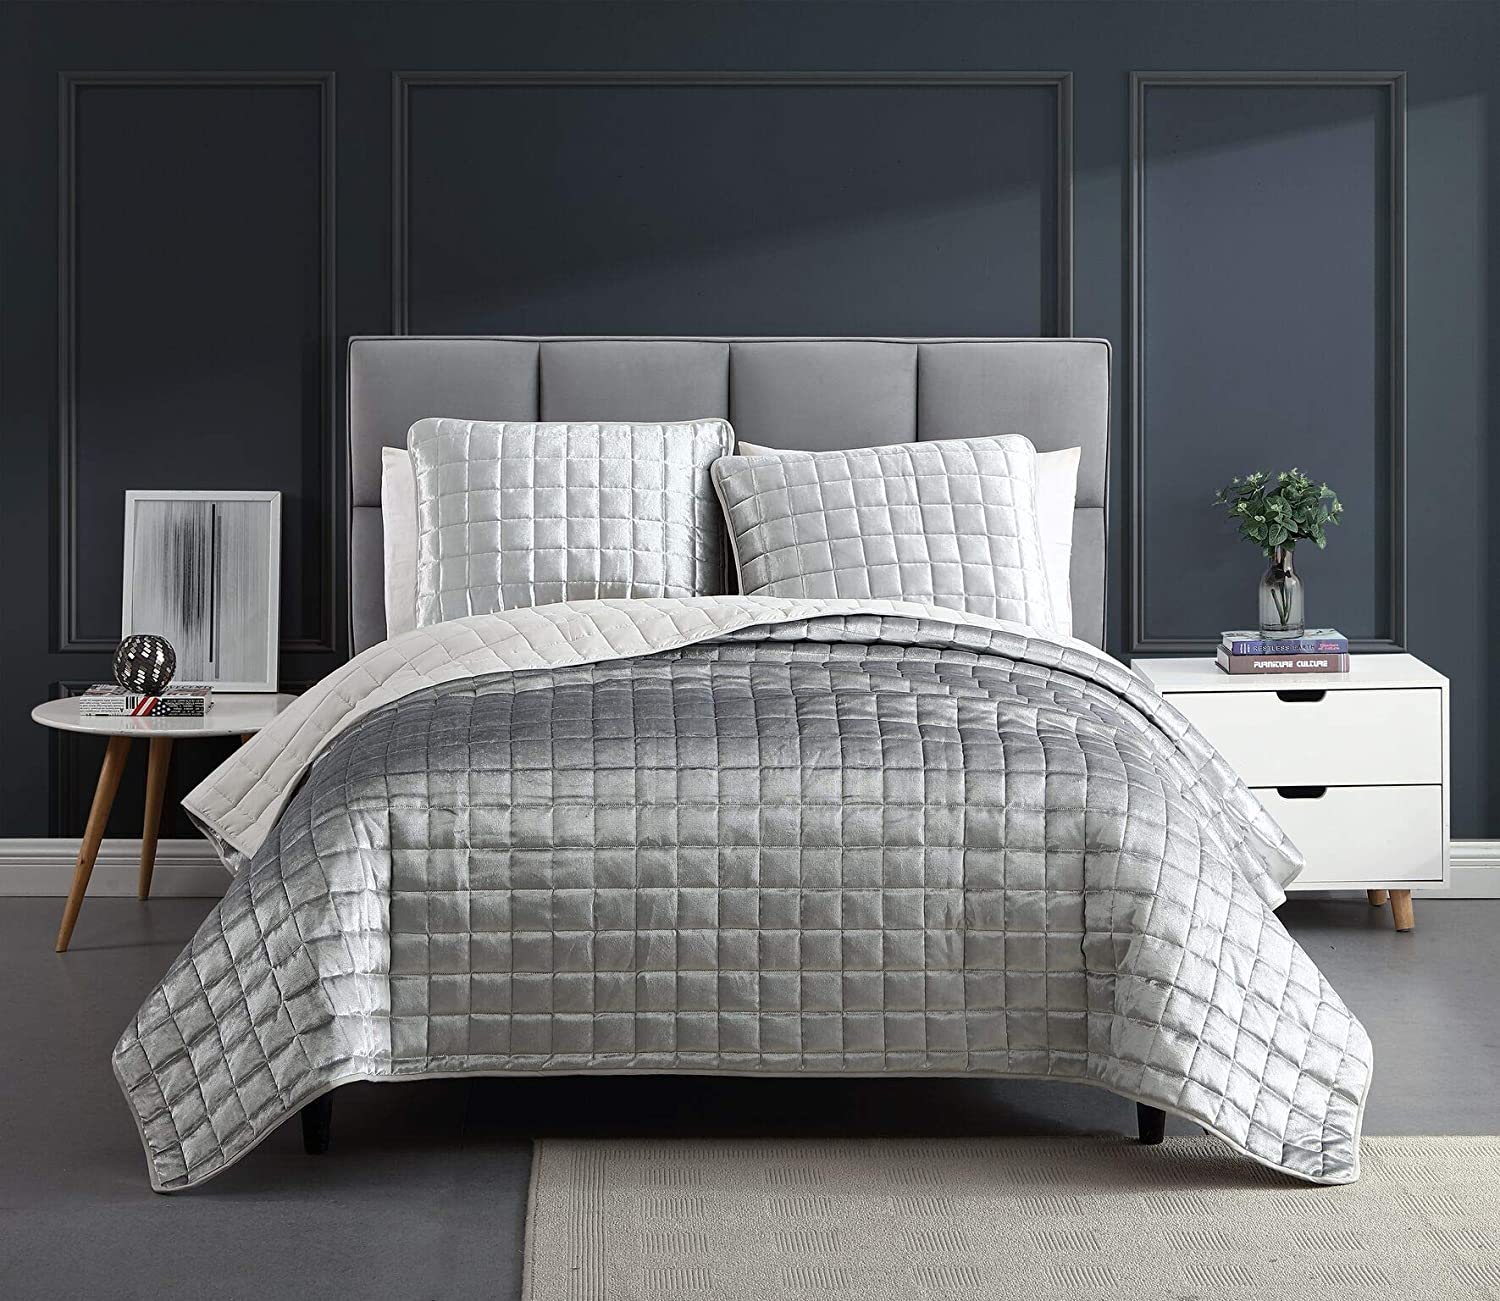 Special price Riverbrook Home - 81896 Lyndon Quilt Set of 3 Silver Max 58% OFF King